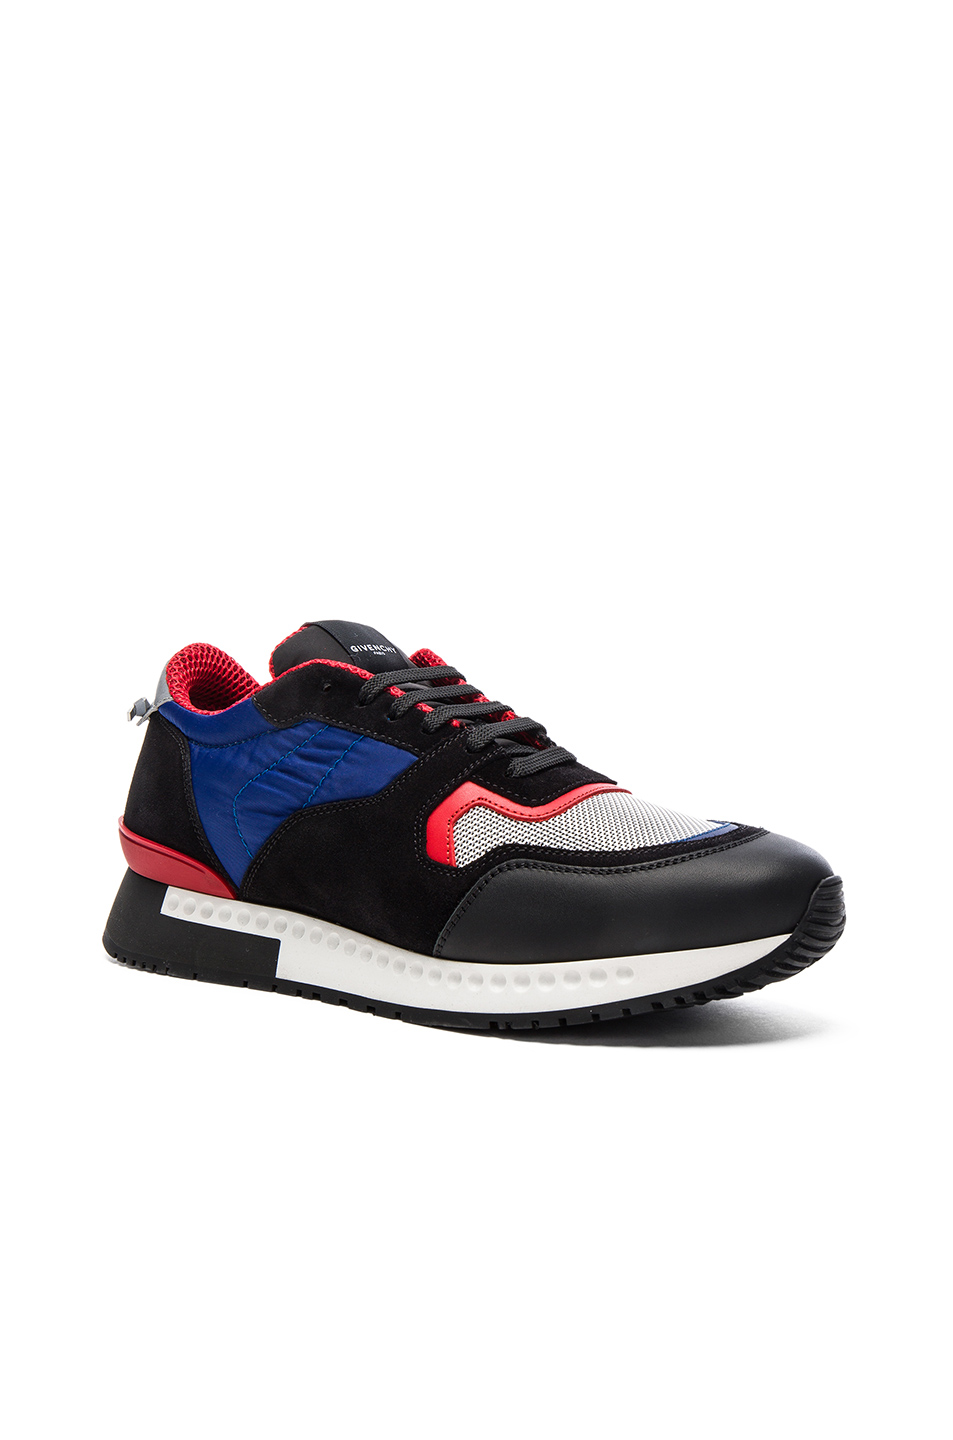 Photo of Givenchy Runner Active Sneakers in Black,Blue - shop Givenchy menswear